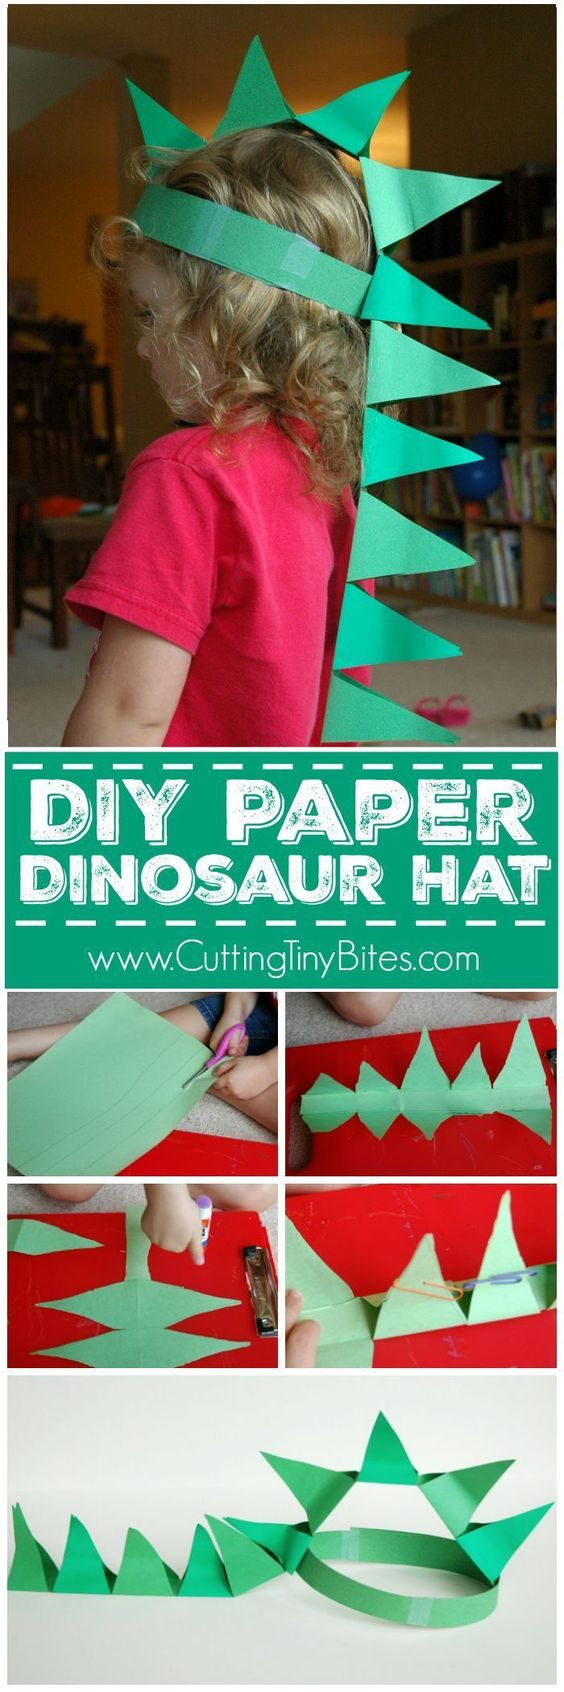 20 homemade dinosaur costumes for halloween diy paper dinosaur hat solutioingenieria Choice Image